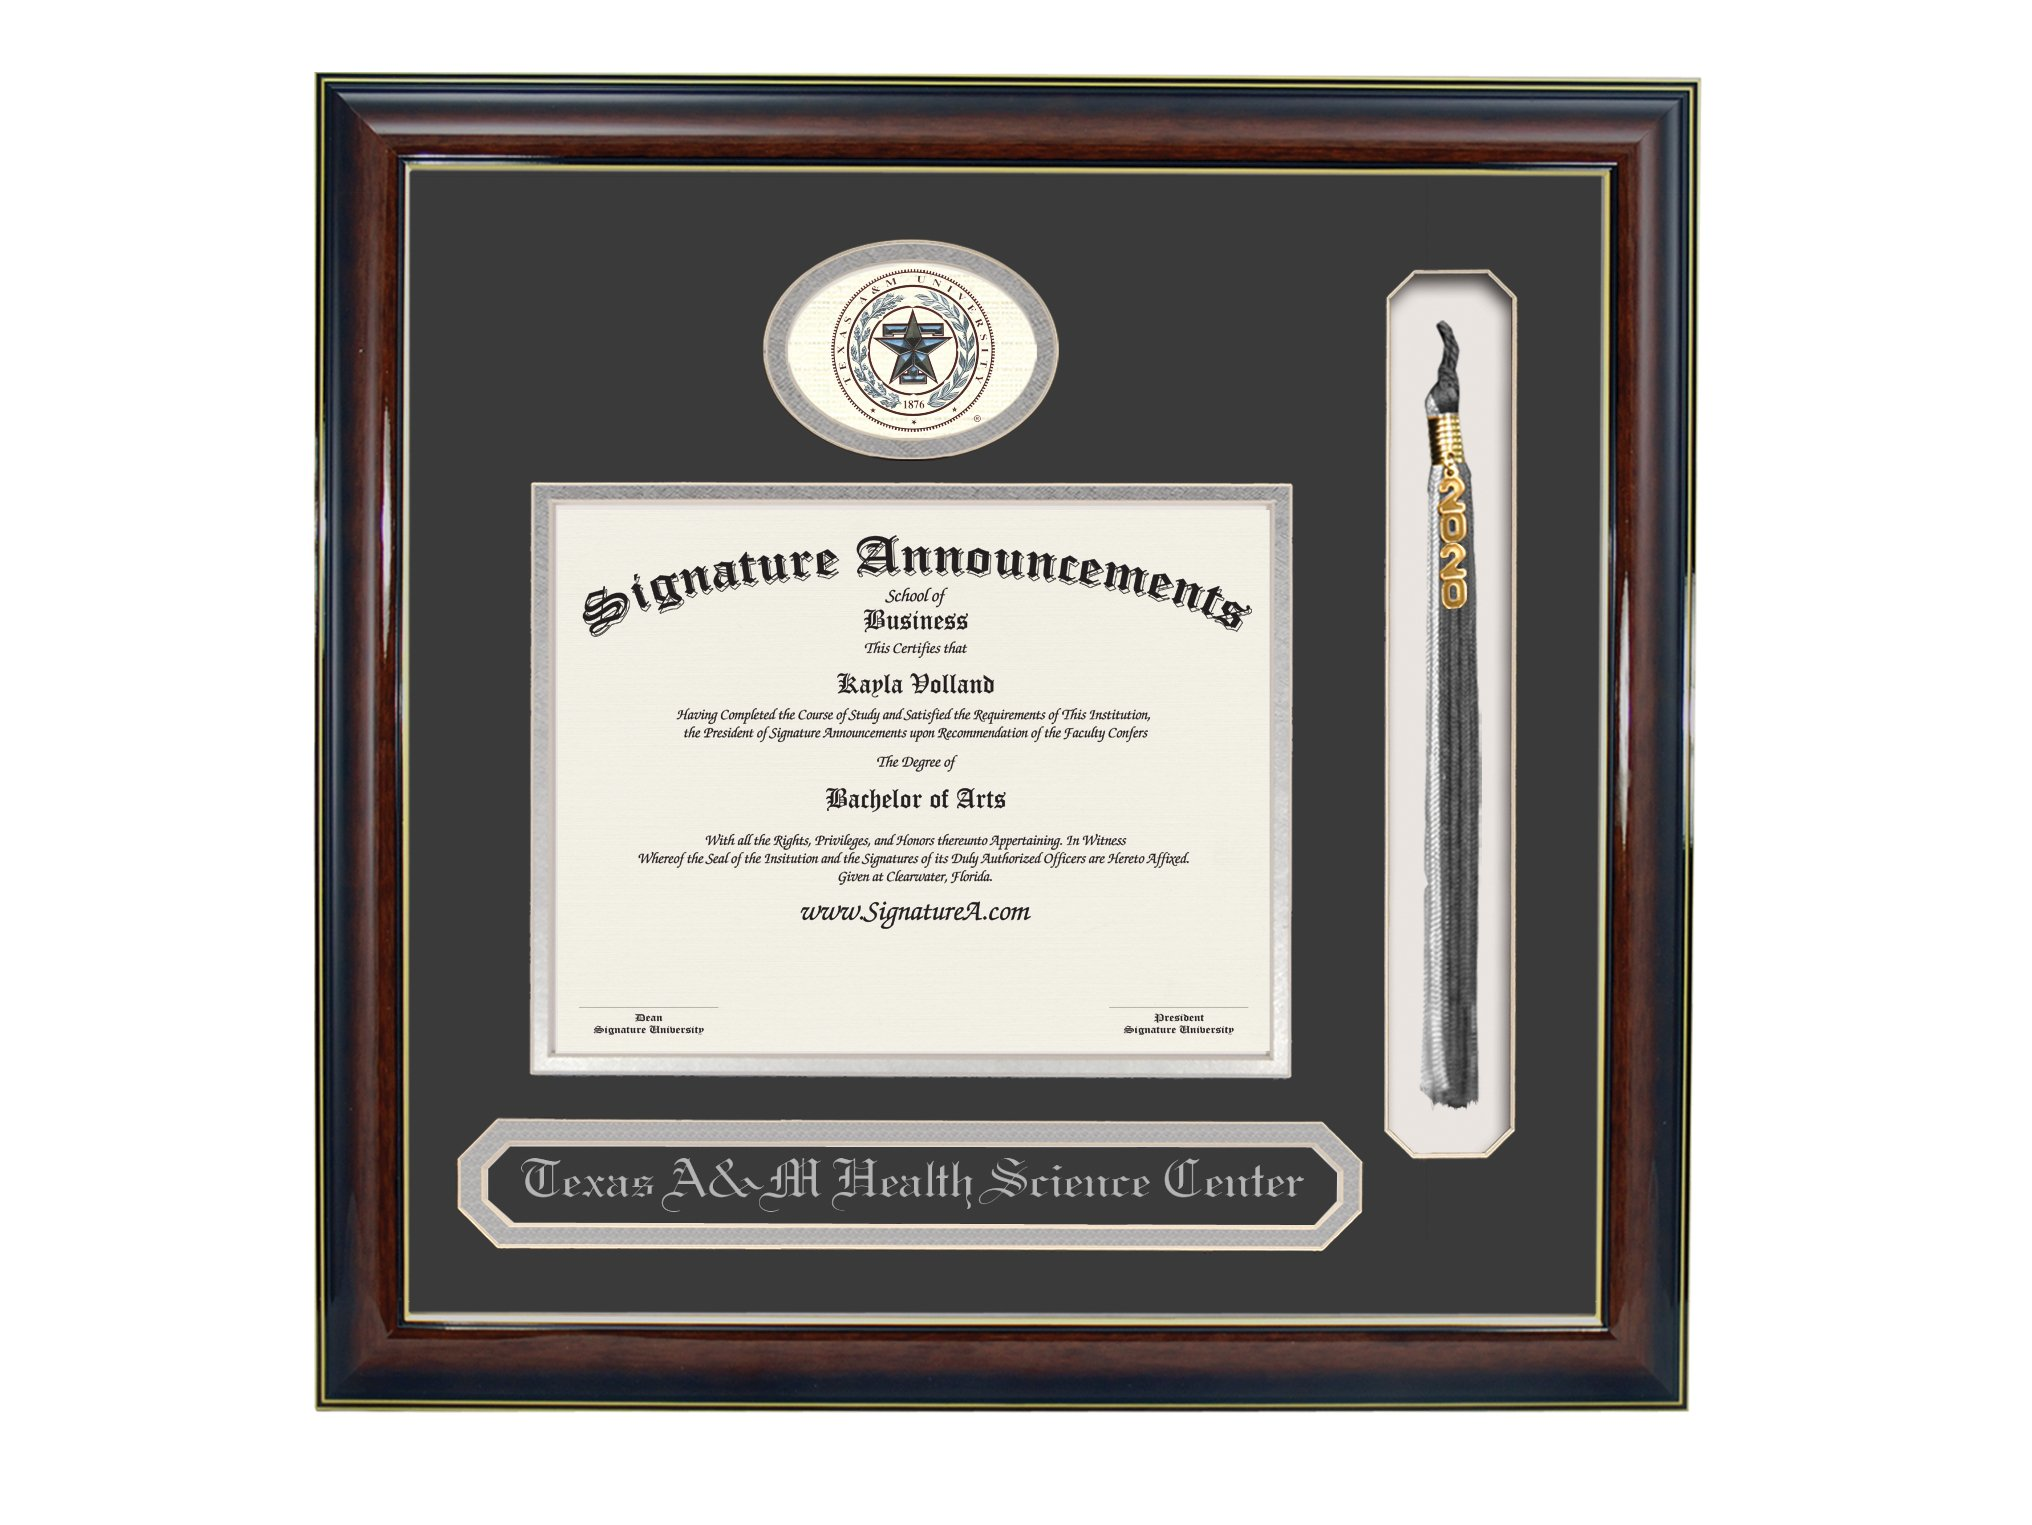 Signature Announcements Texas-a&M Science-Center-School-of-Public-Health Undergraduate, Doctorate Sculpted Foil Seal, Name & Tassel Graduation Diploma Frame, 23'' x 24'', Gloss Mahogany with Gold Accent